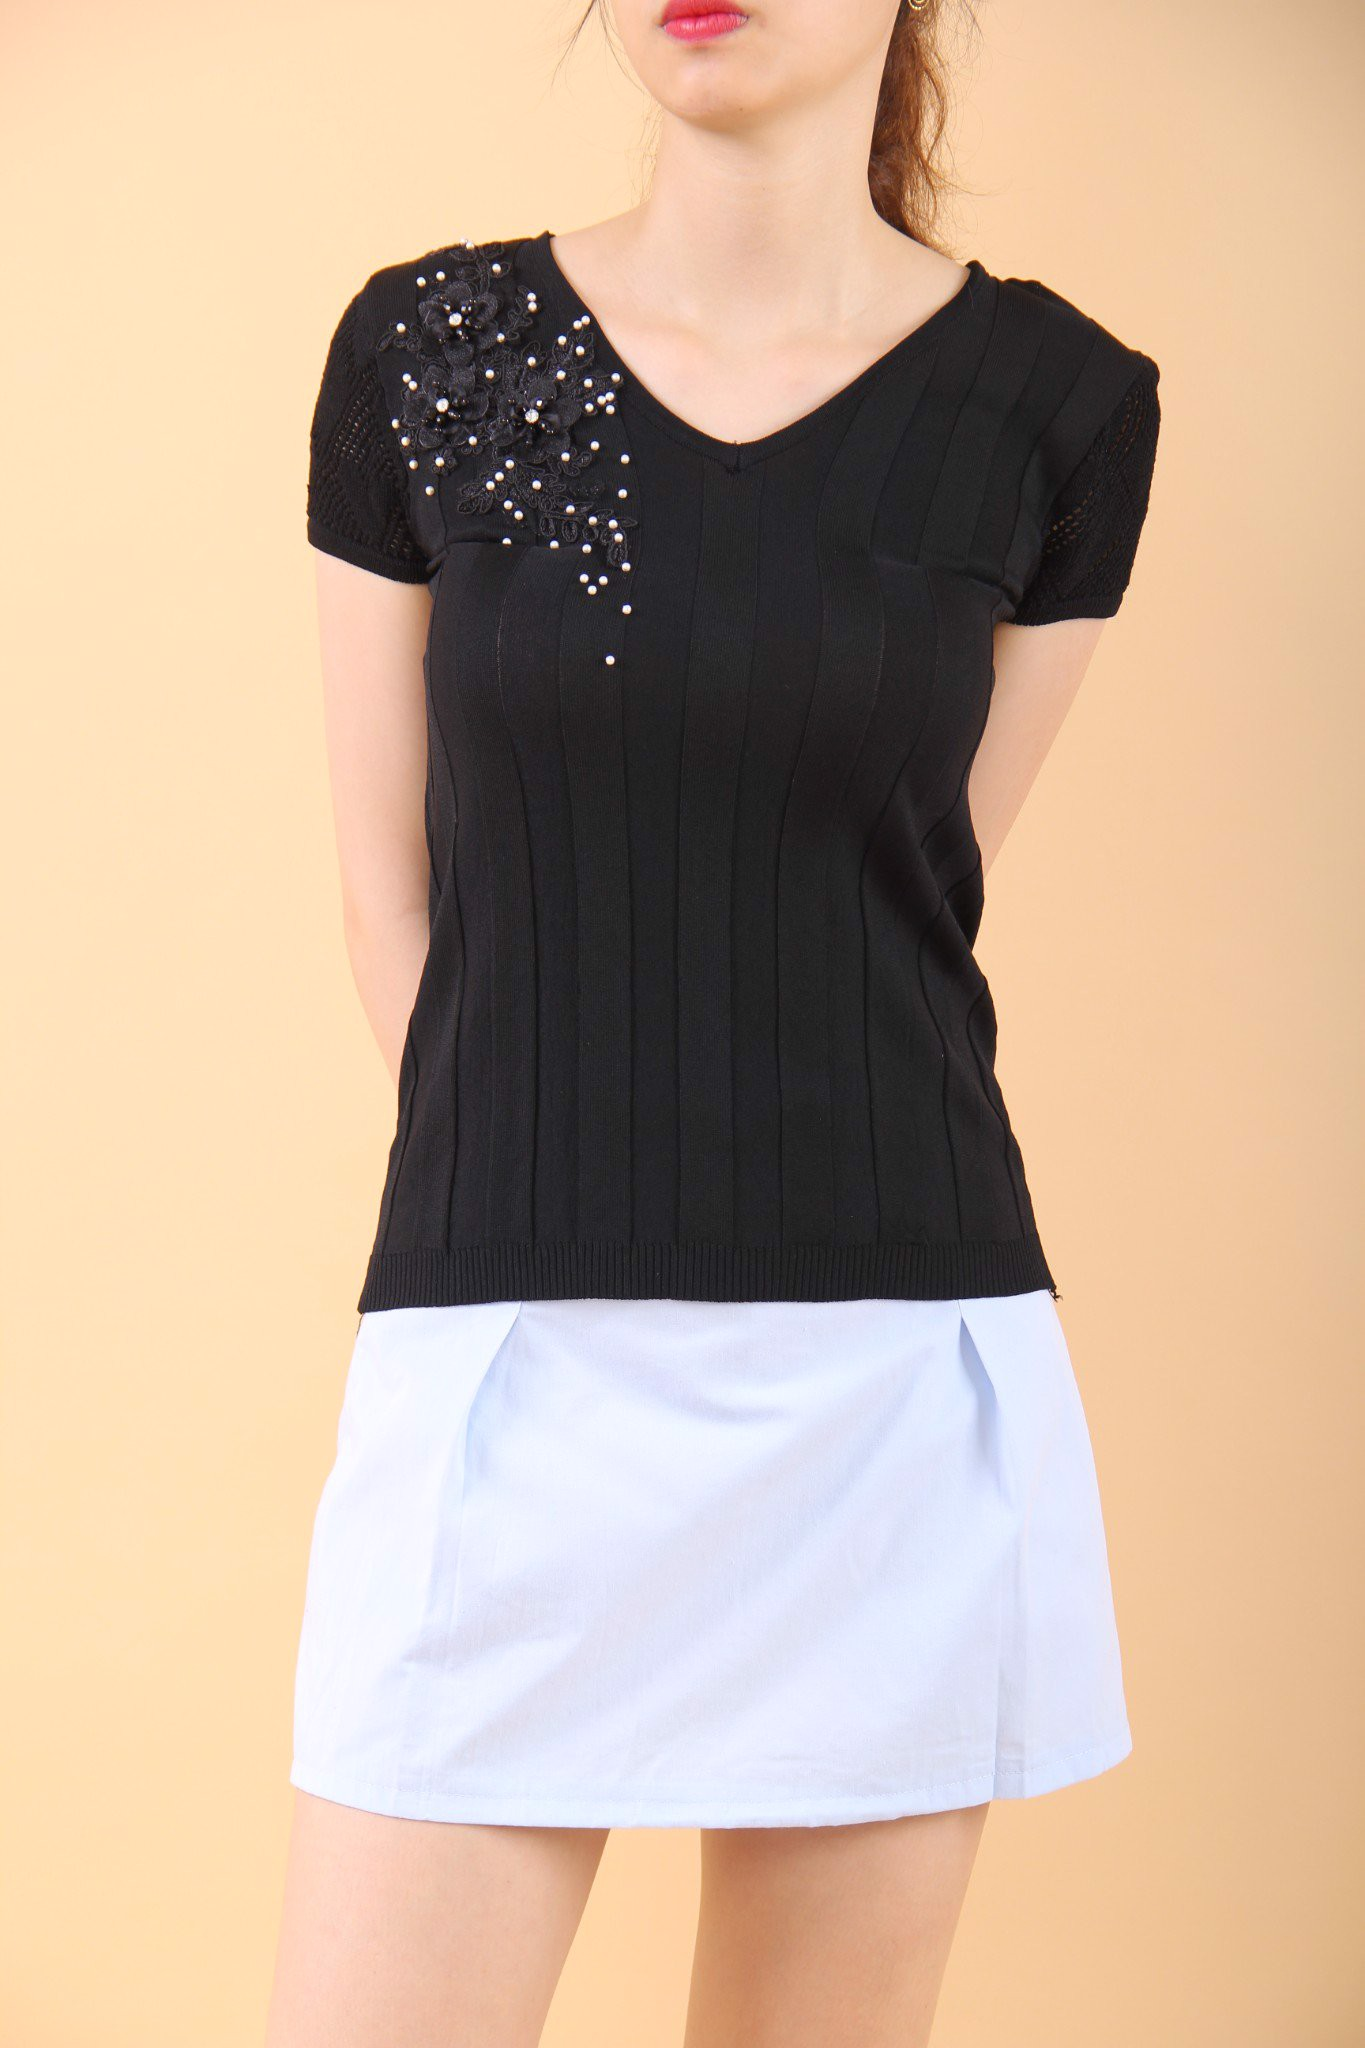 3D embroidery and pearls black top